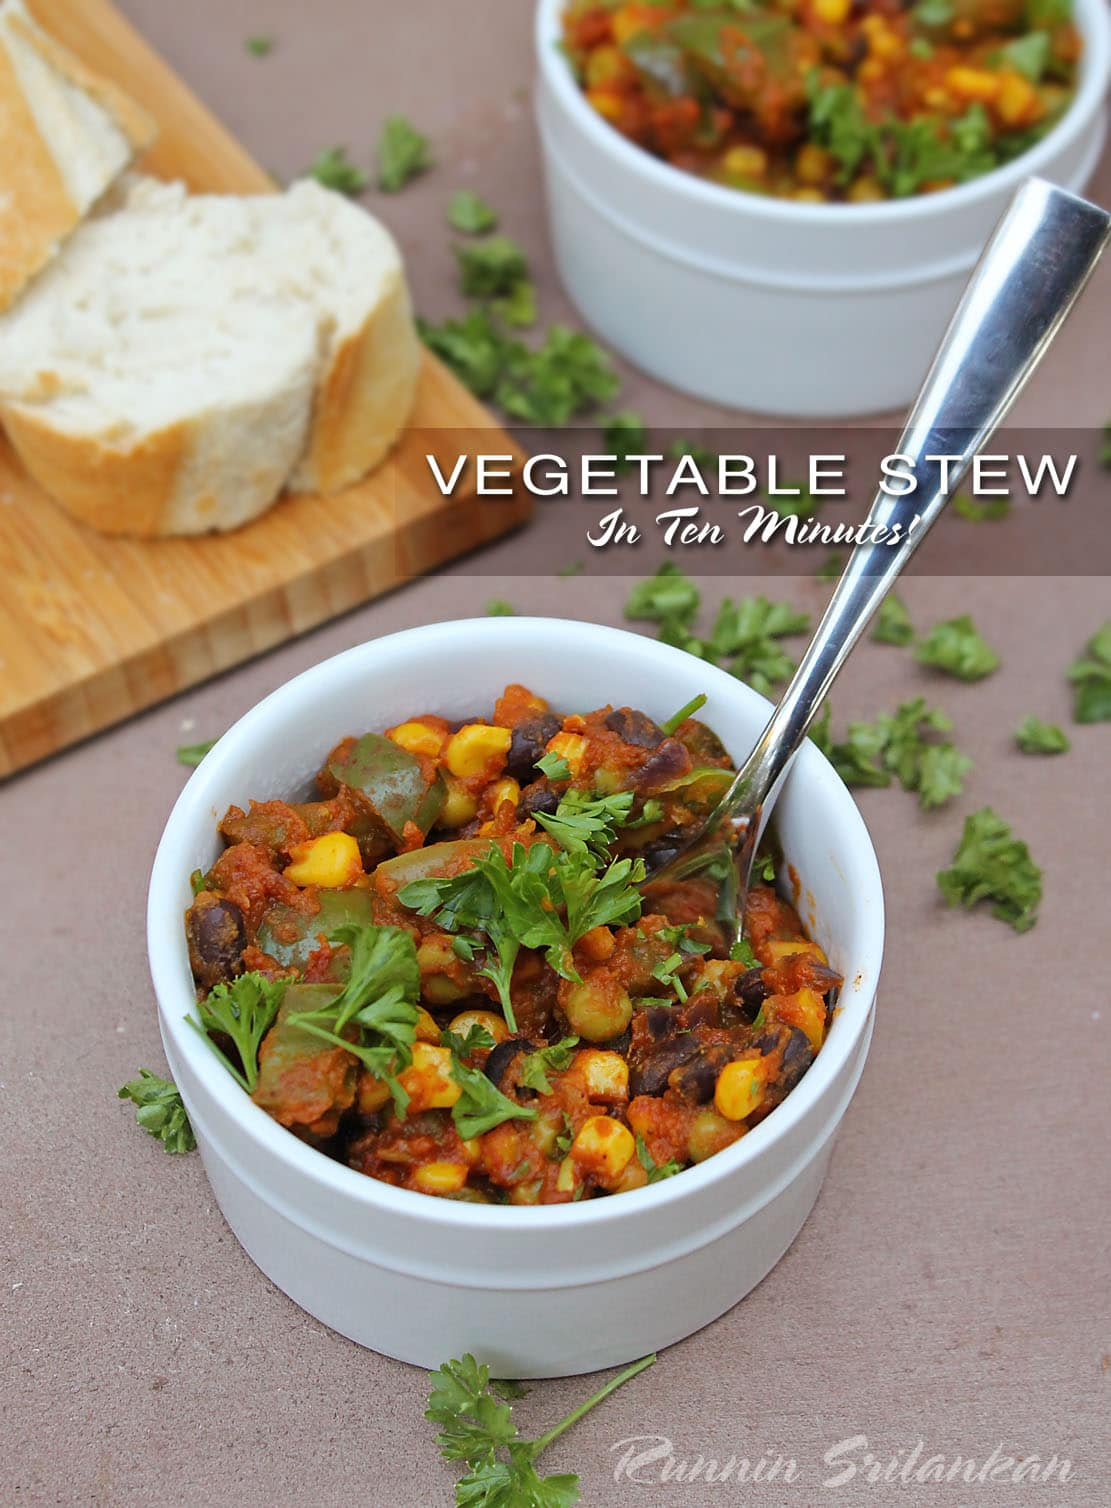 Vegetable Stew/Warm Salad in 10 Minutes {with Libby's Vegetable Pouches}